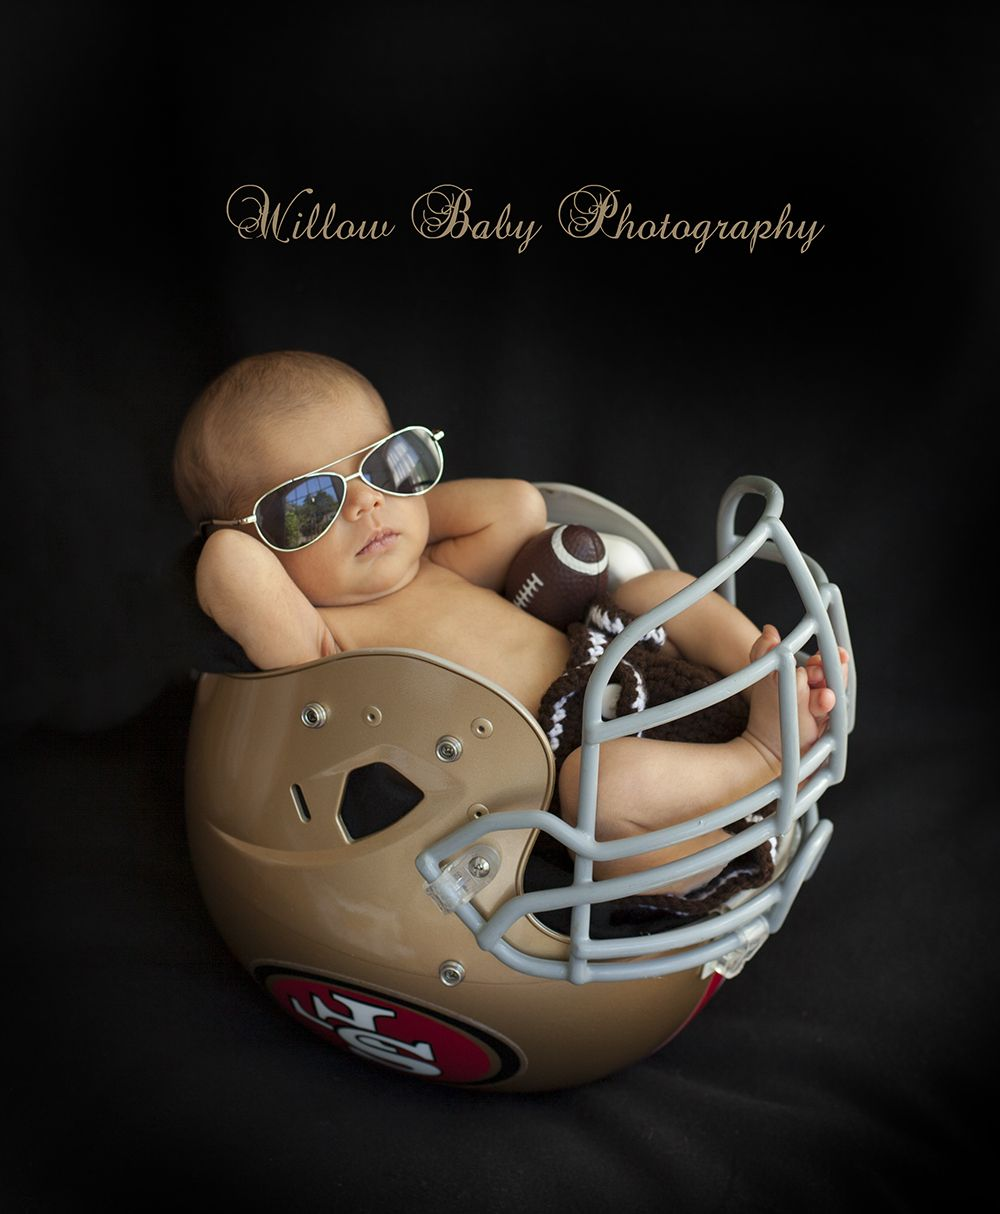 Newborn football picture with baby boy wearing sunglasses at Willow Baby Photography in San Jose